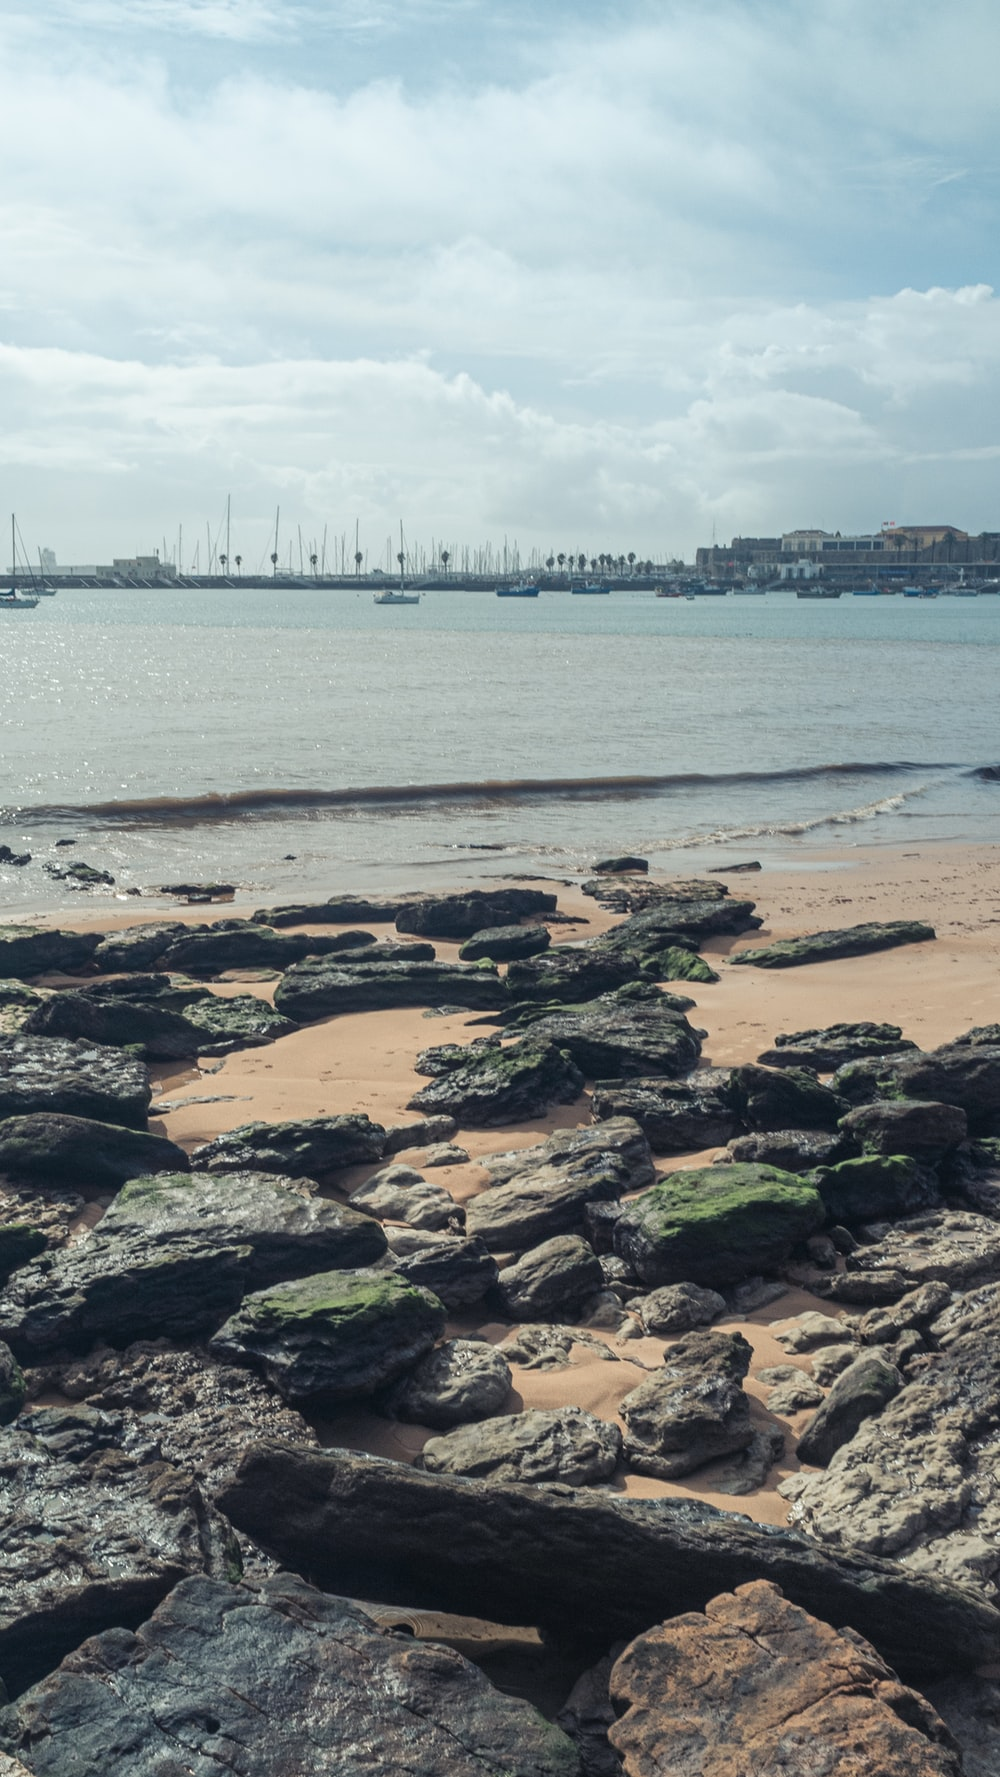 rocks on the seashore during daytime